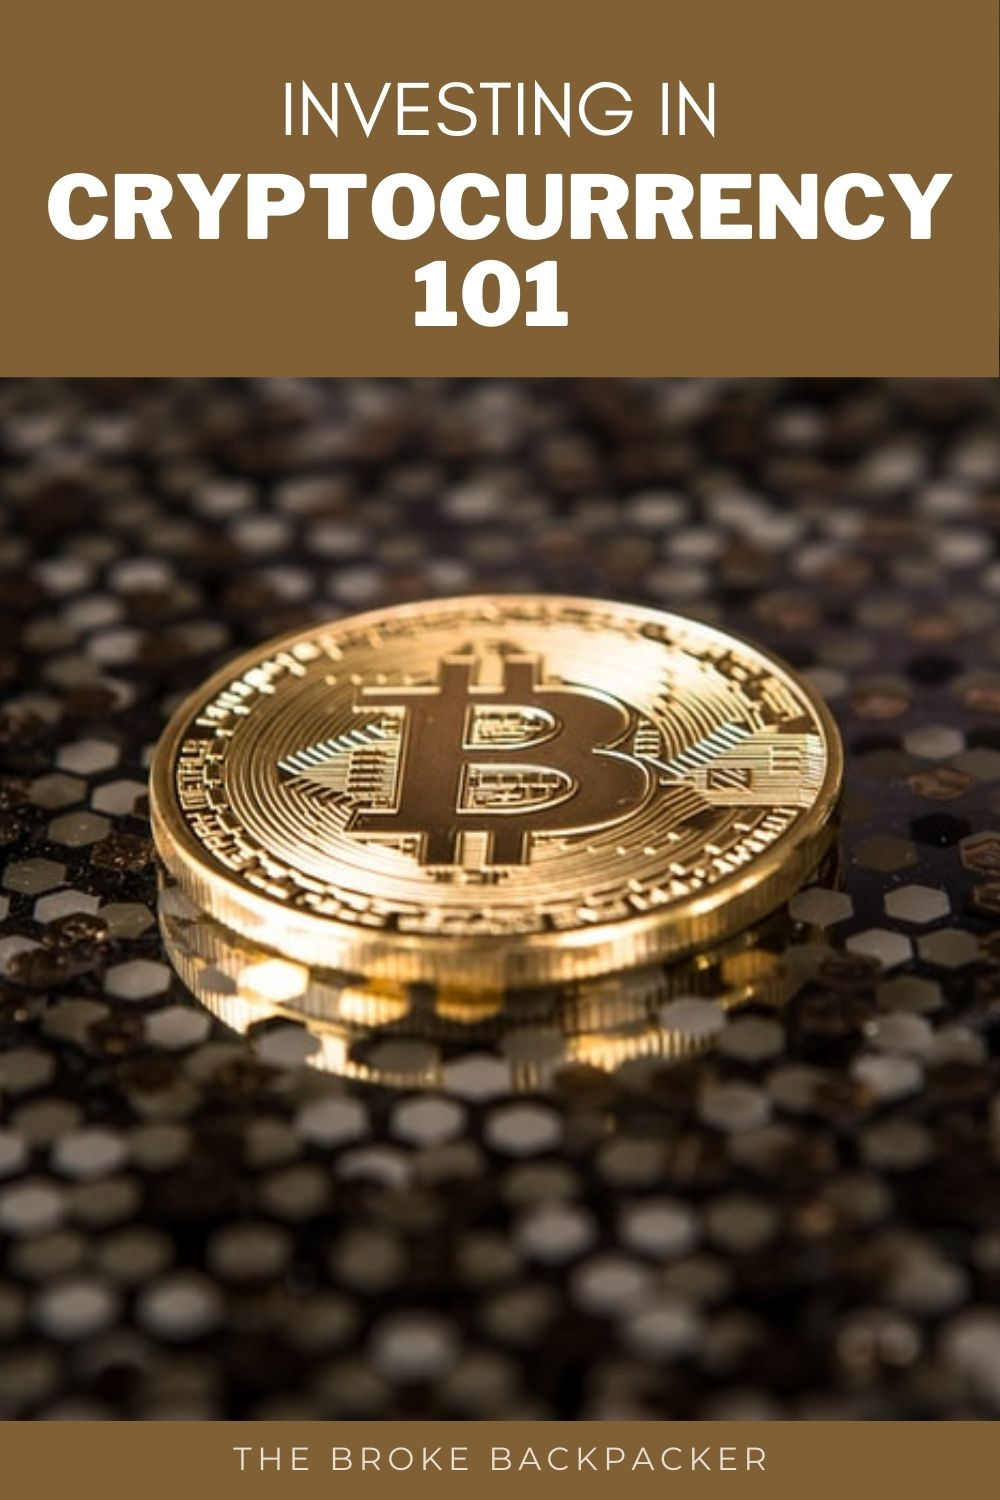 Amazon.com: Cryptocurrency Investing For Dummies eBook: Danial, Kiana:  Kindle Store